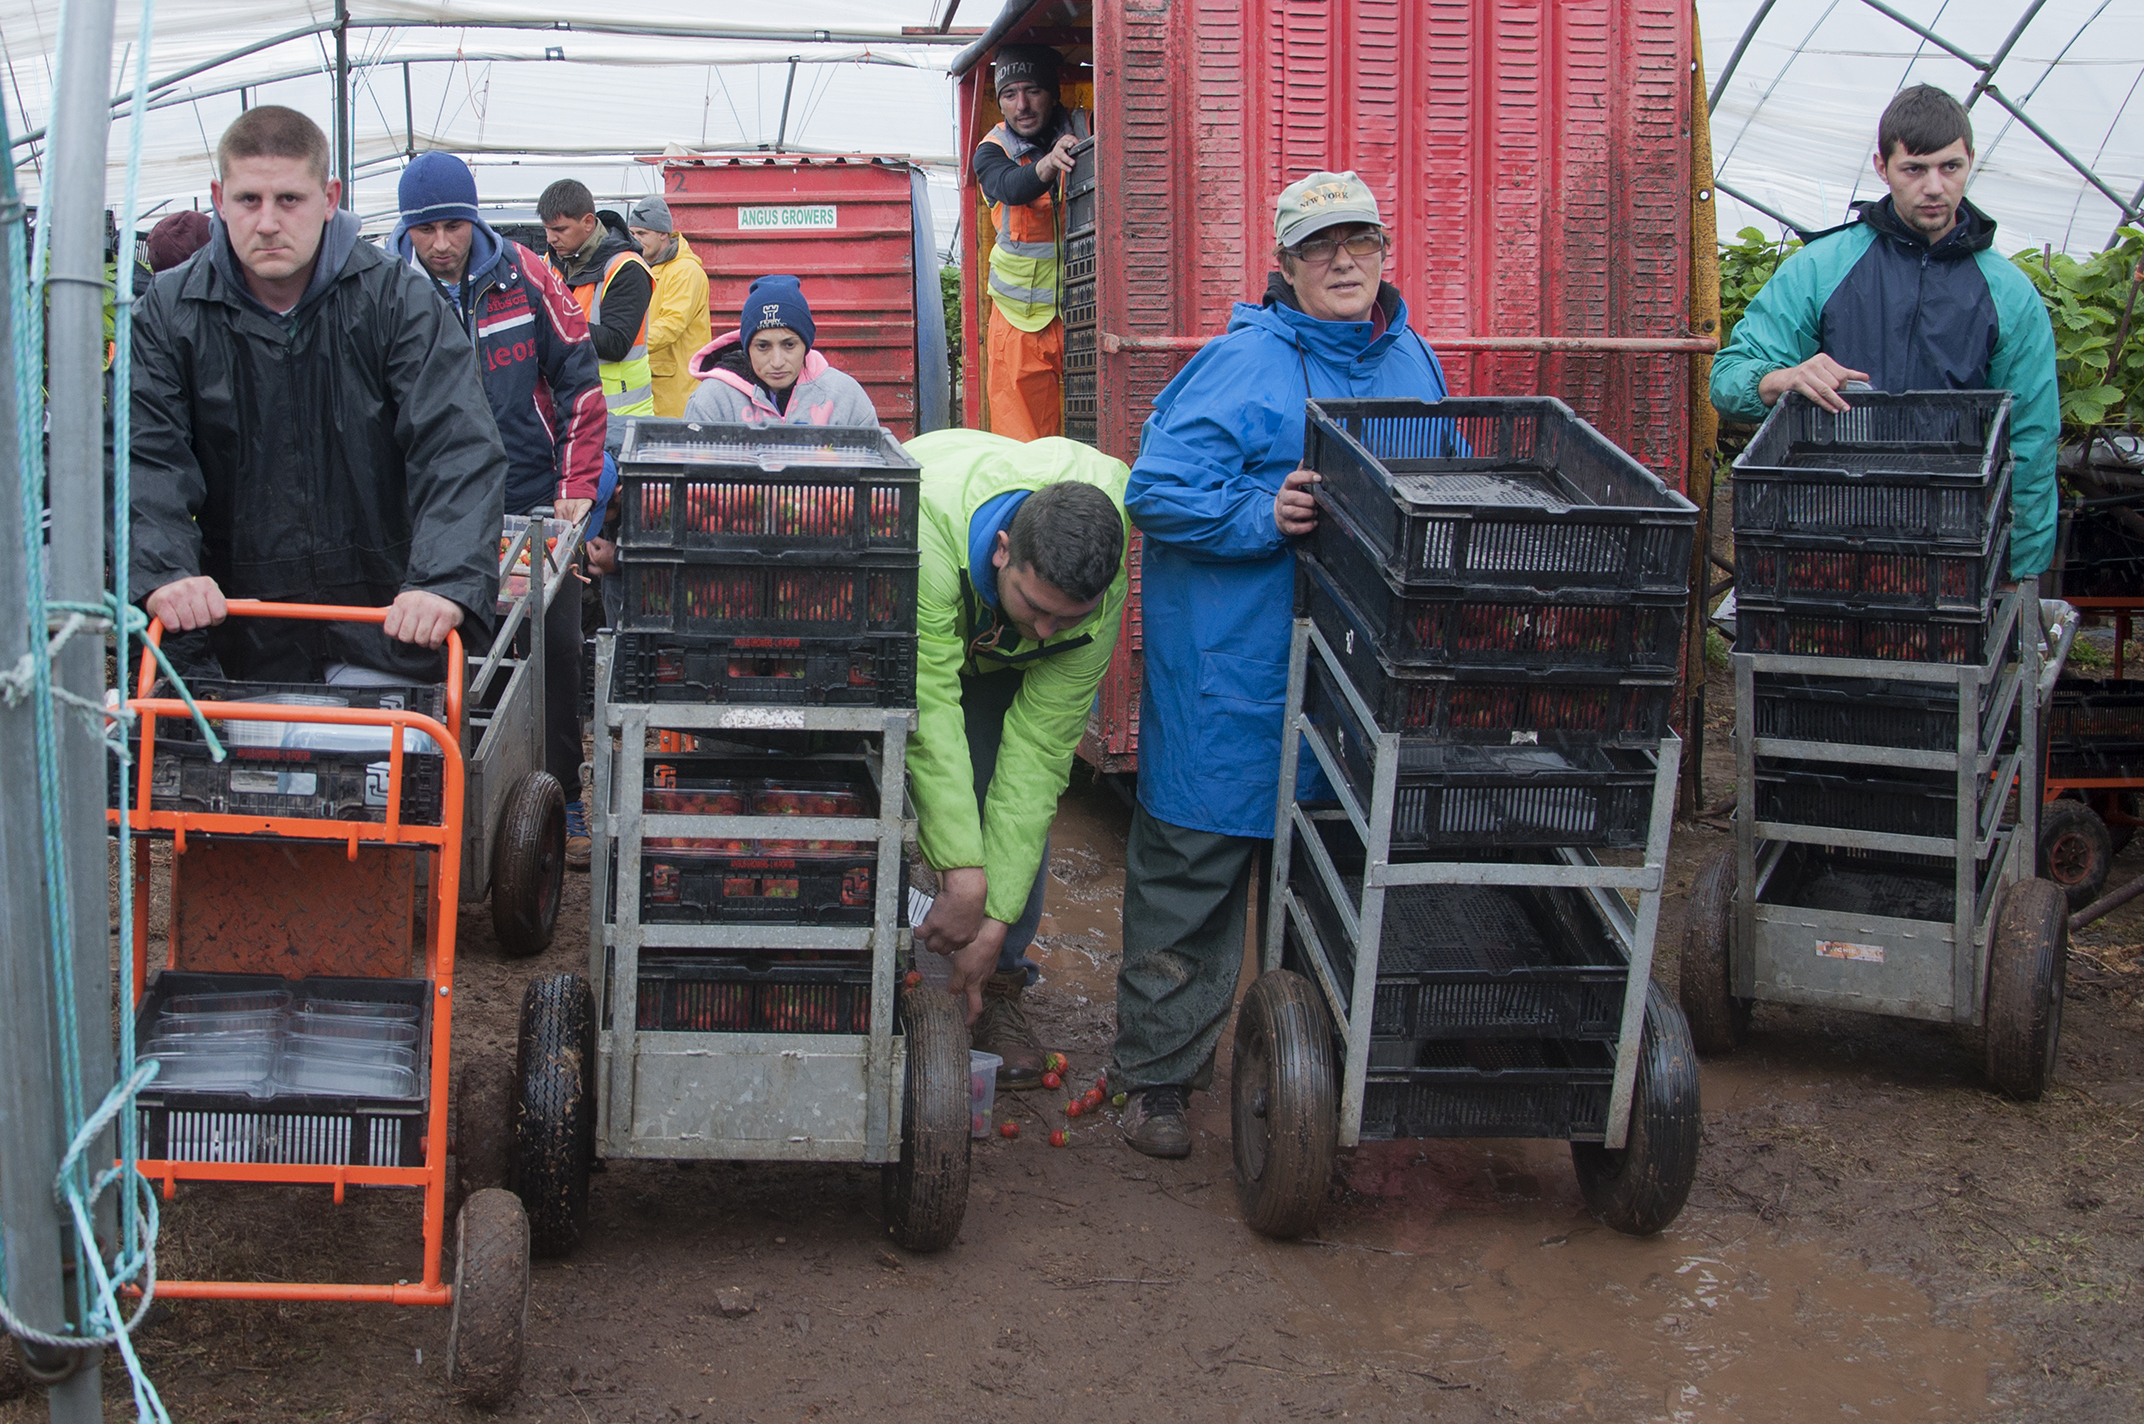 The number of EU nationals wanting to work in the UK's agricultural industry is declining